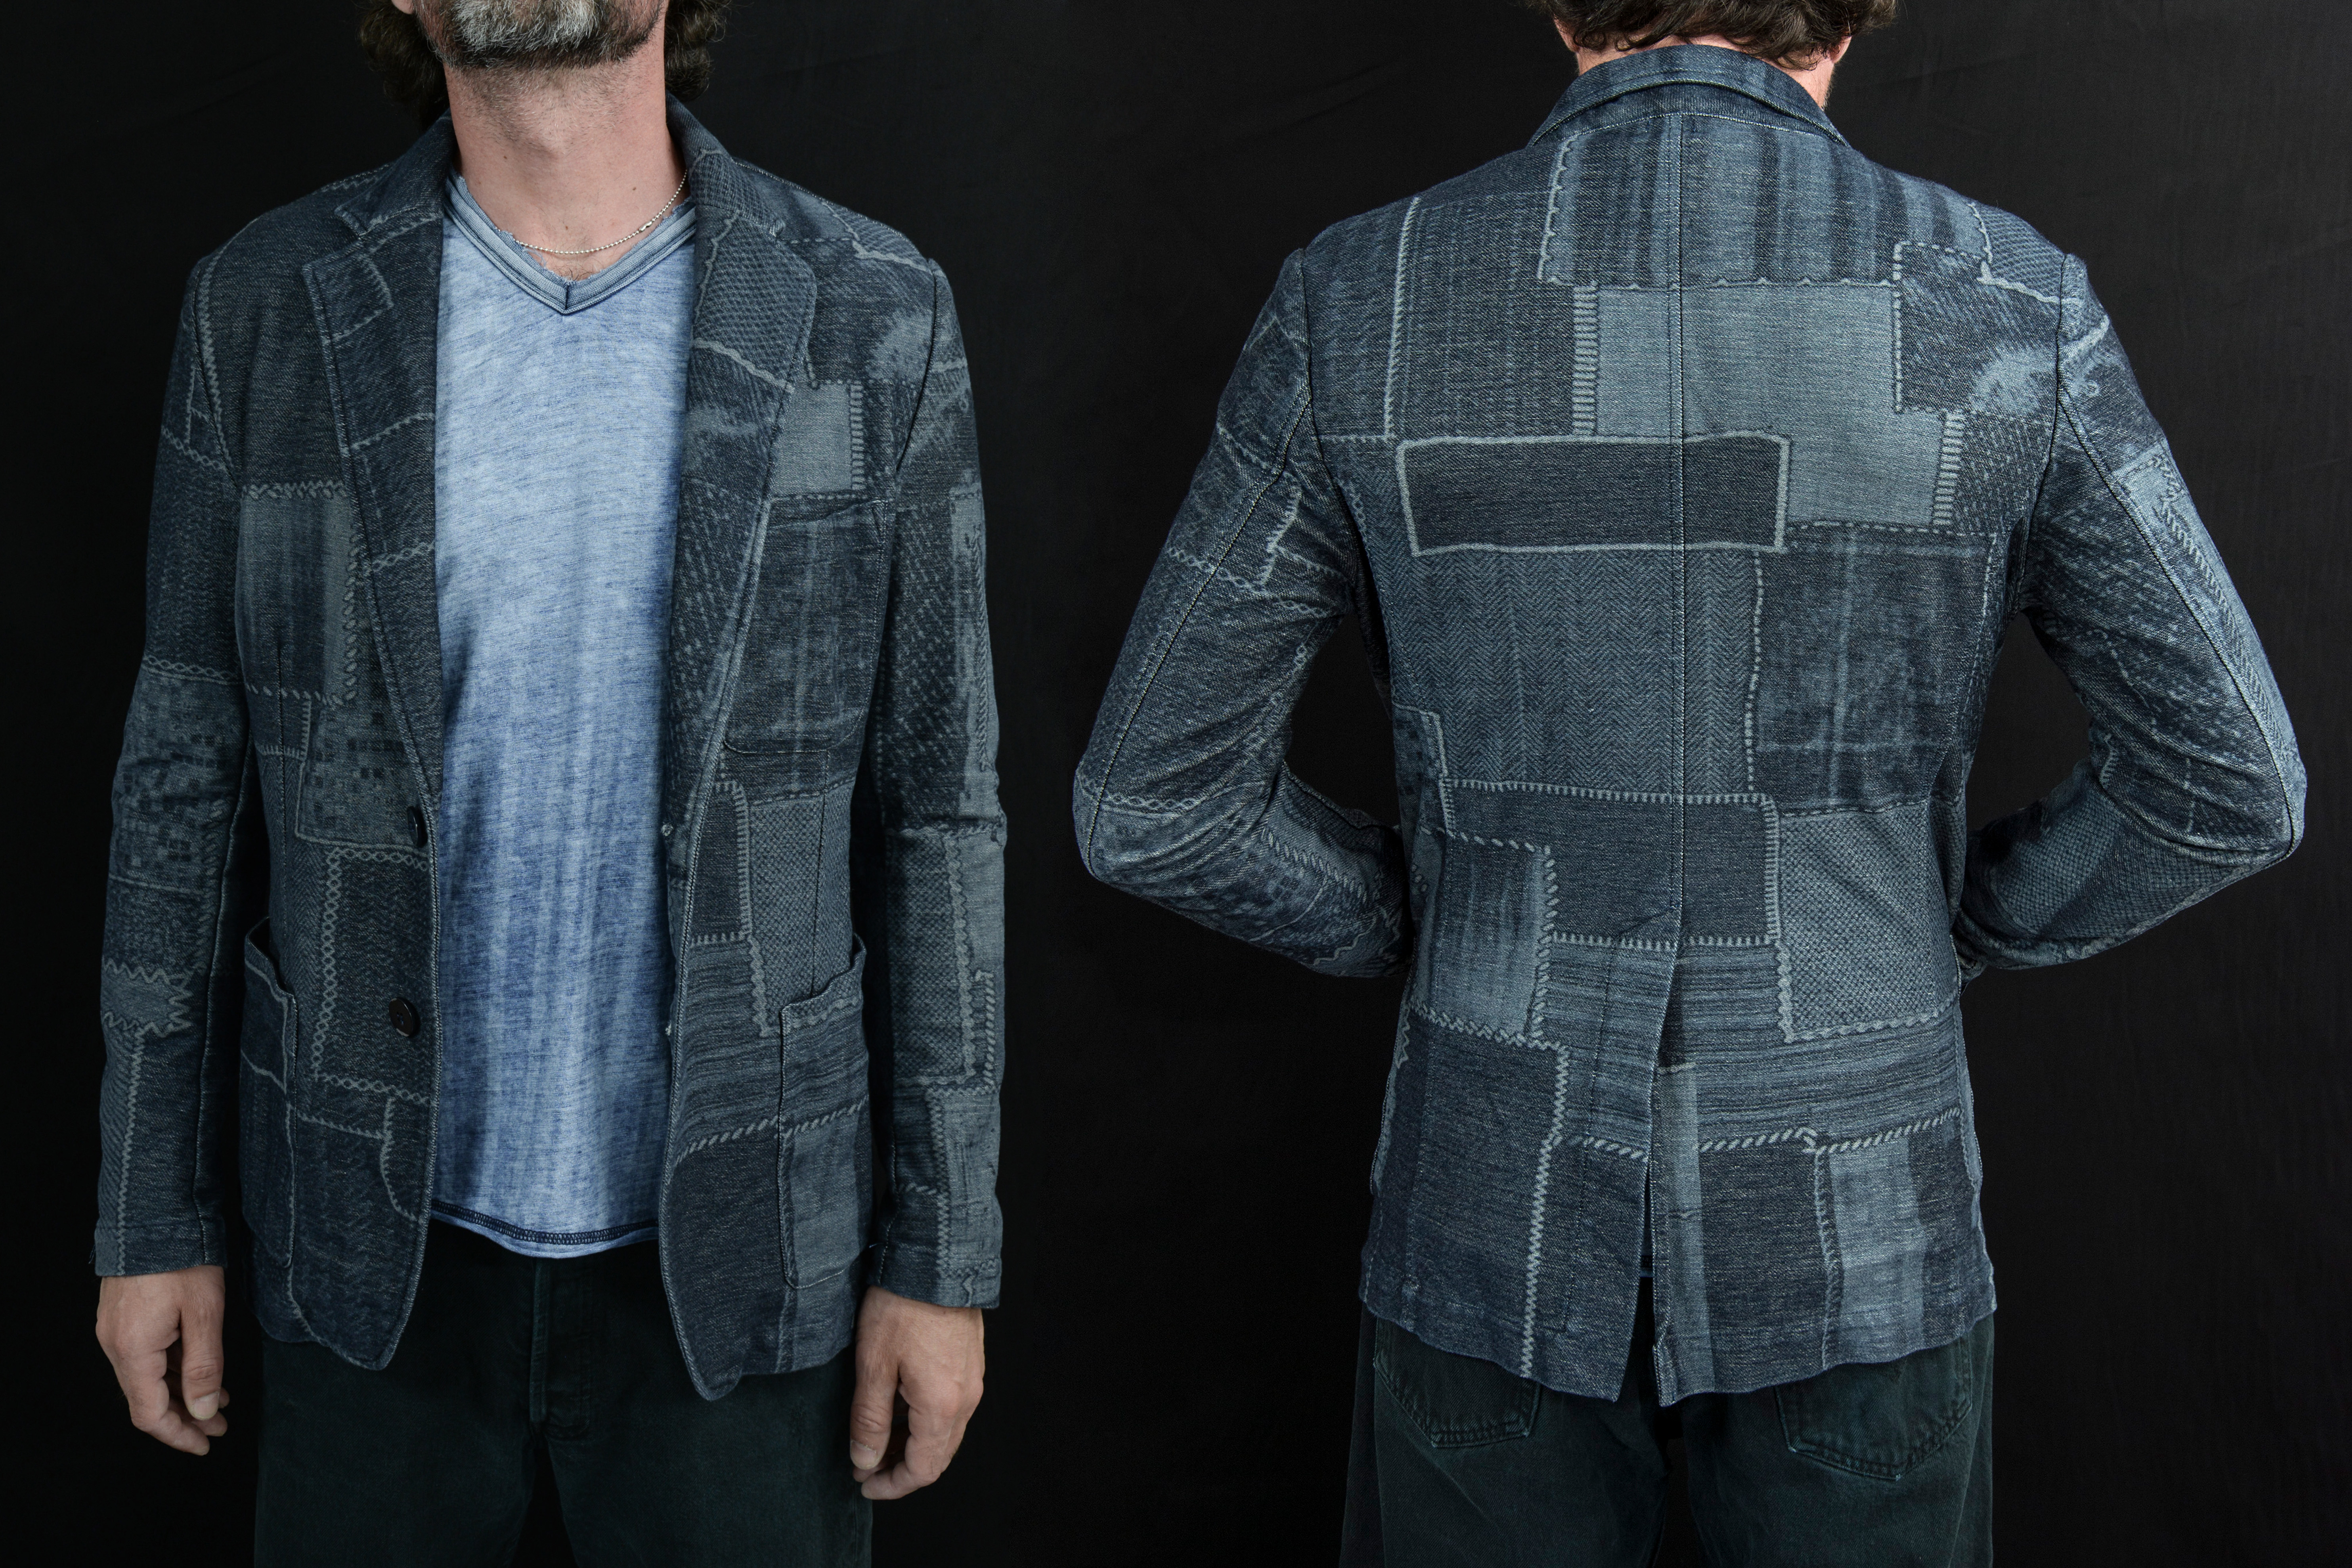 Jeans Knits collection curated by Meidea for Jeanologia.